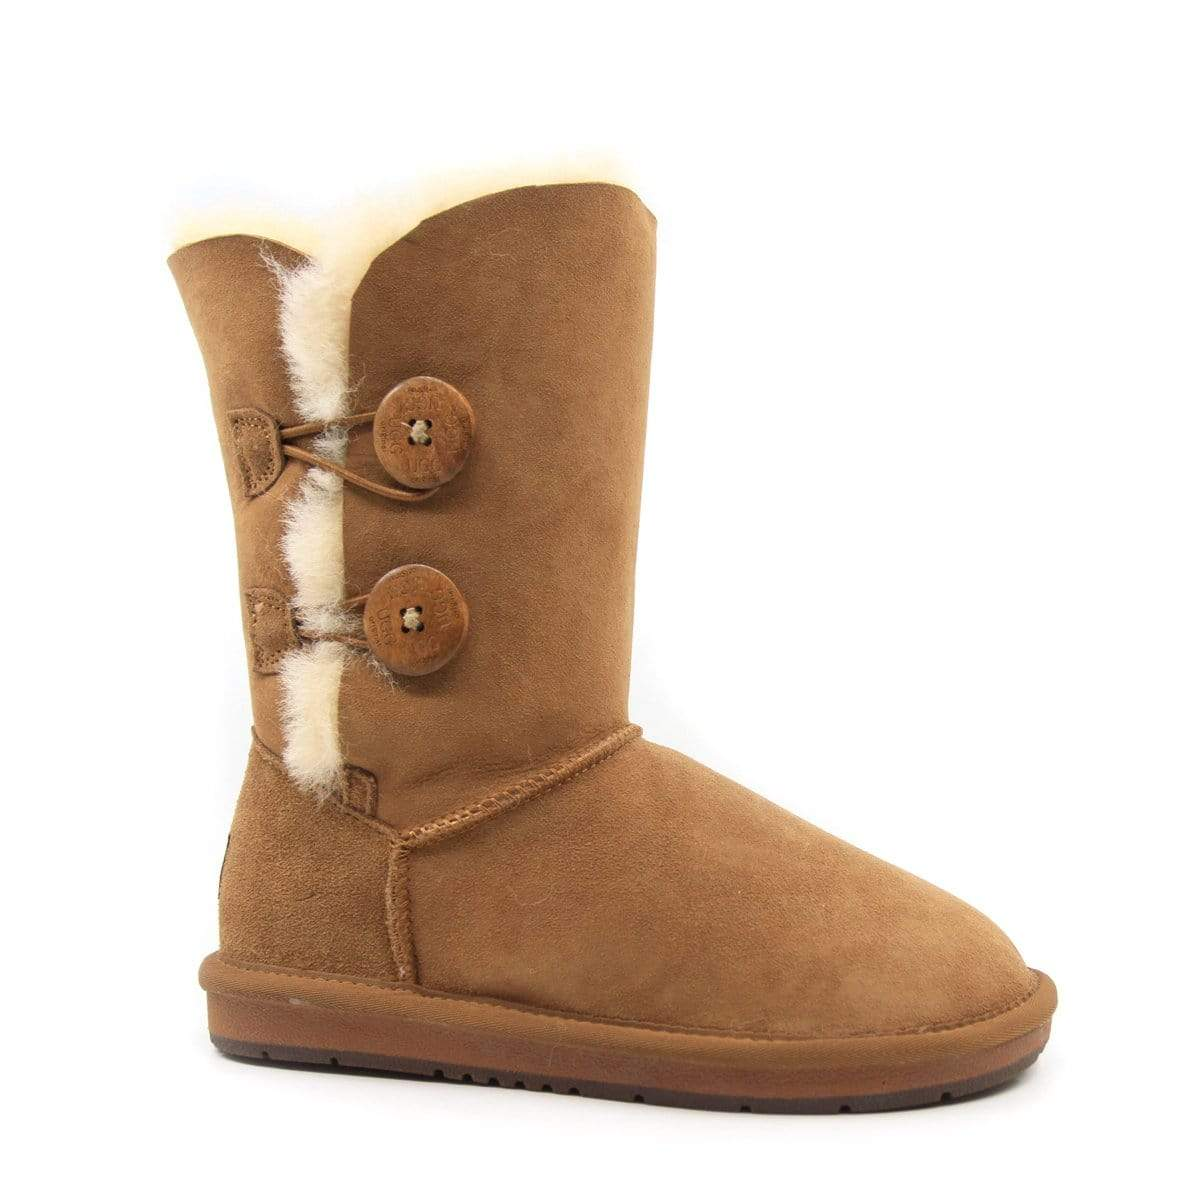 UGG Direct - Premium 2 Button Boot - UGG Direct - Australia